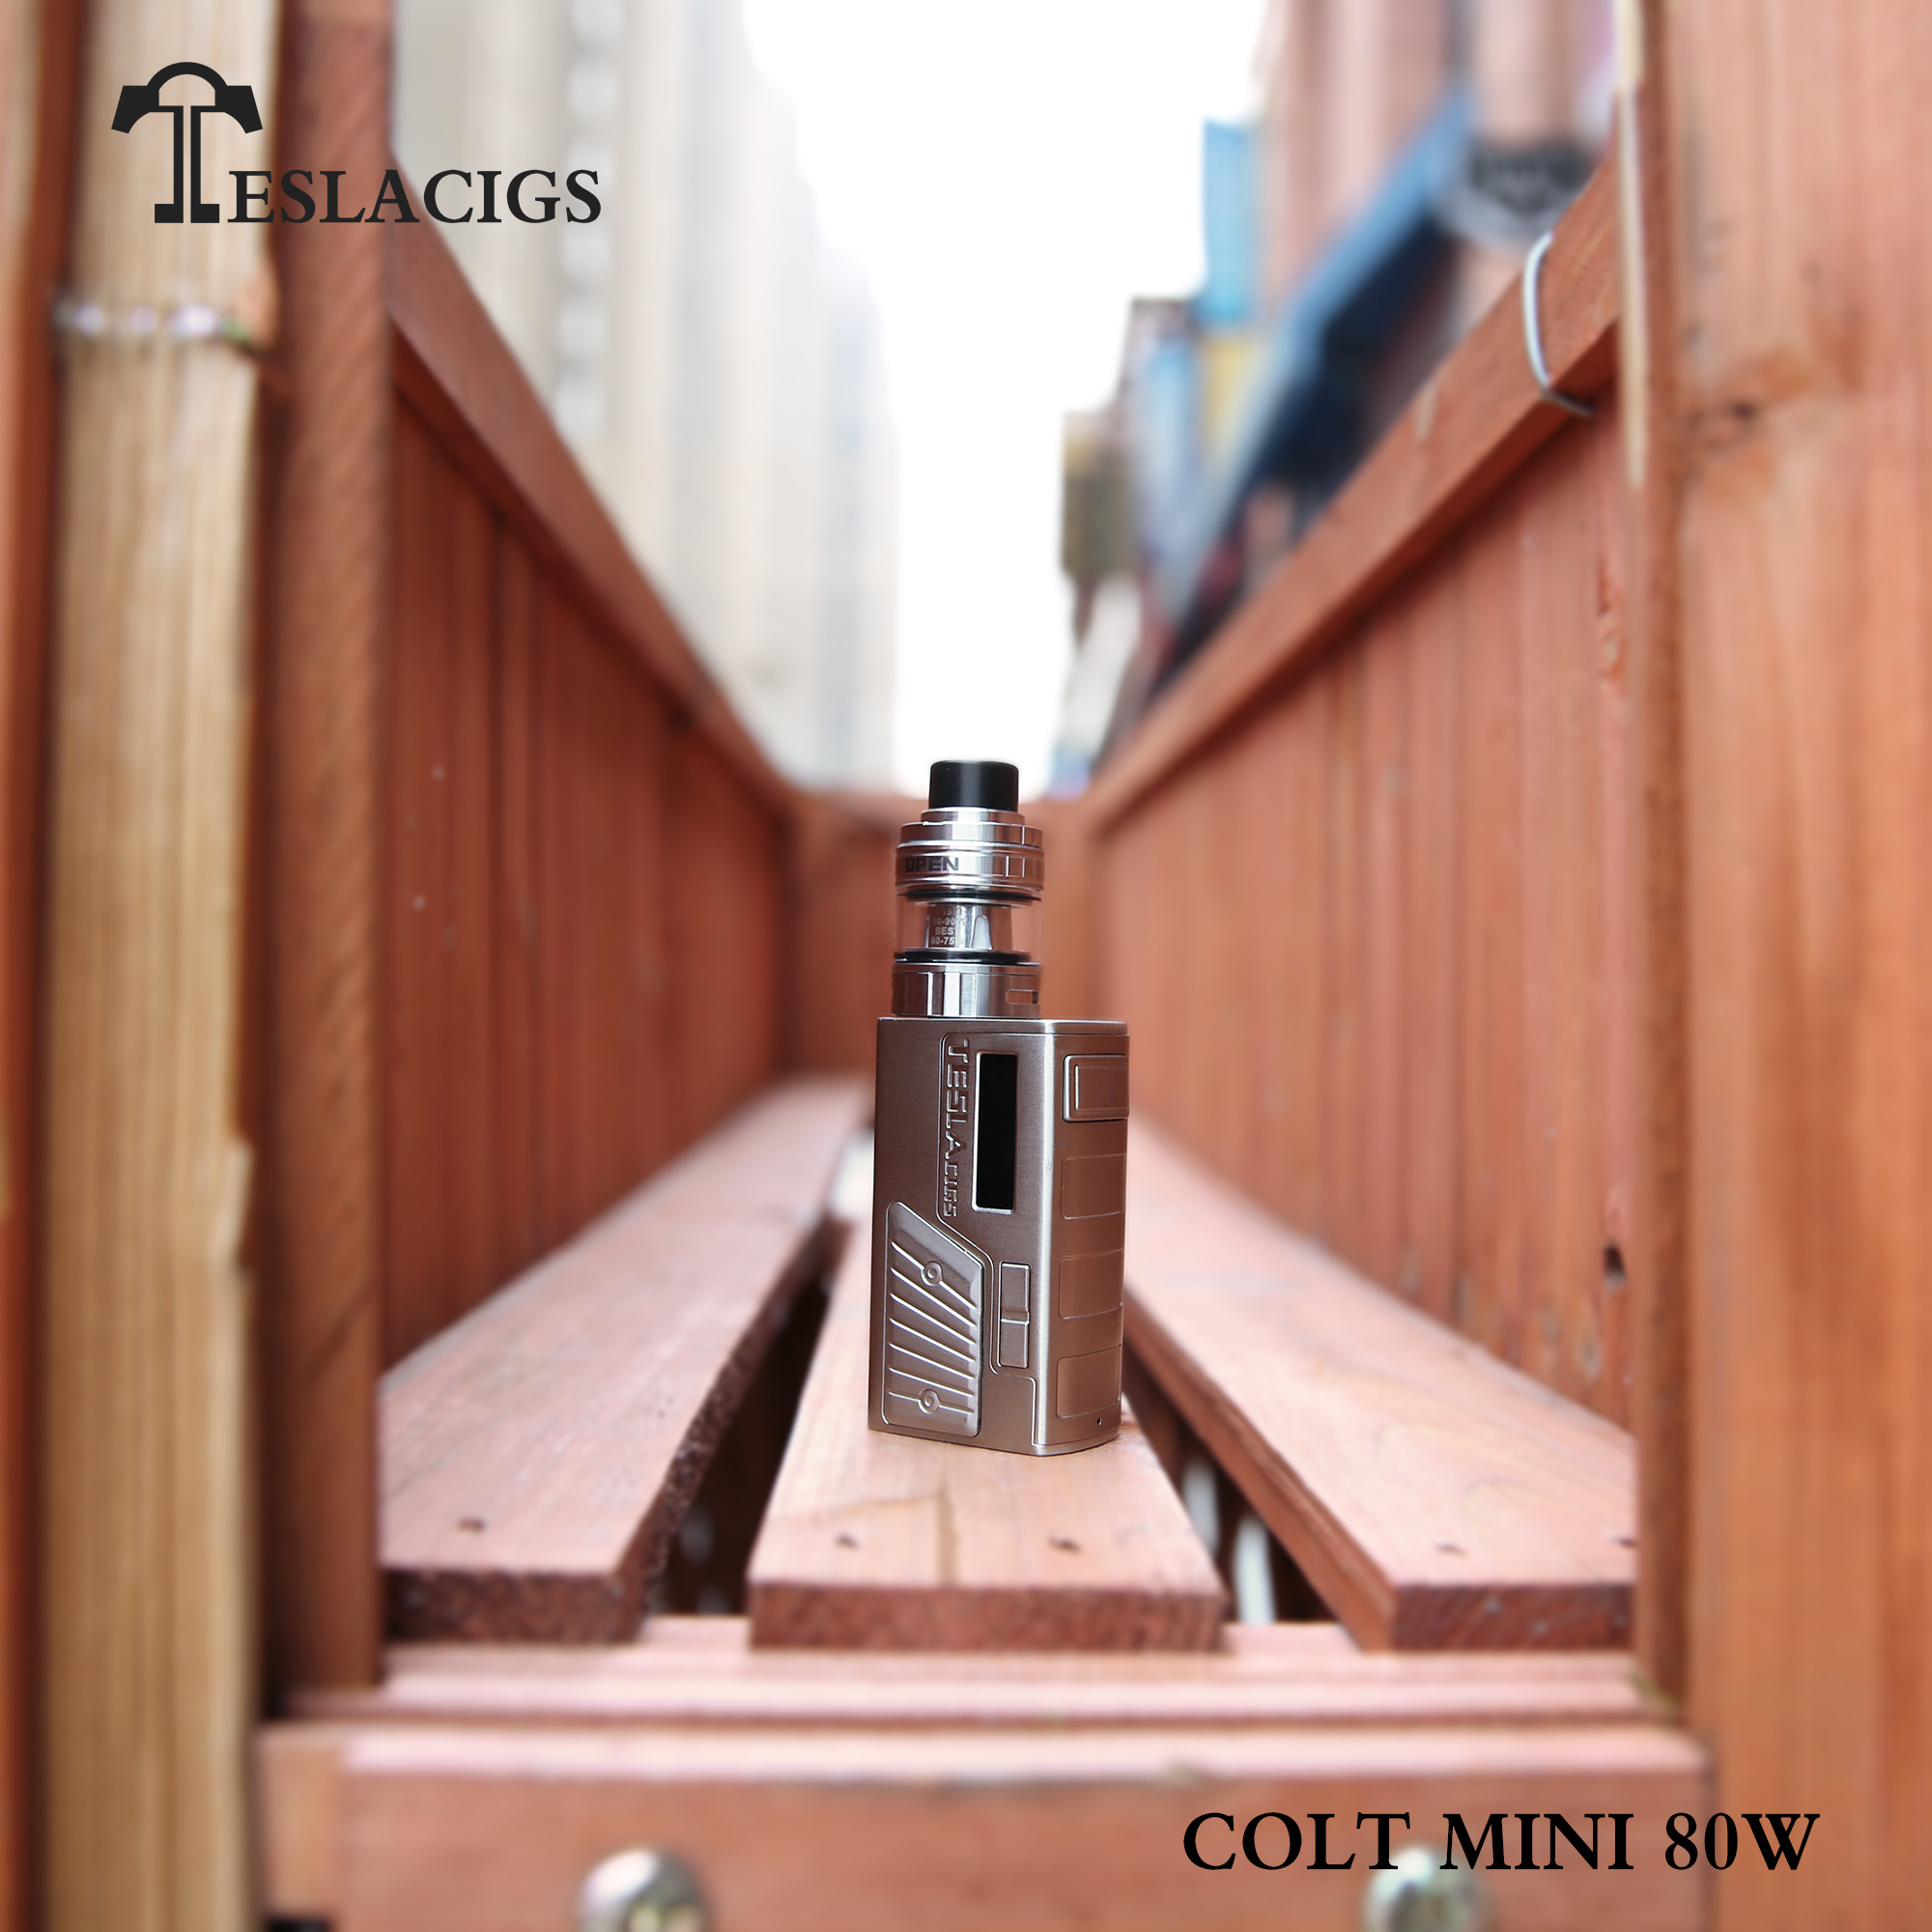 2018 Vape new fashion weathervane Teslacigs colt mini 80w mod